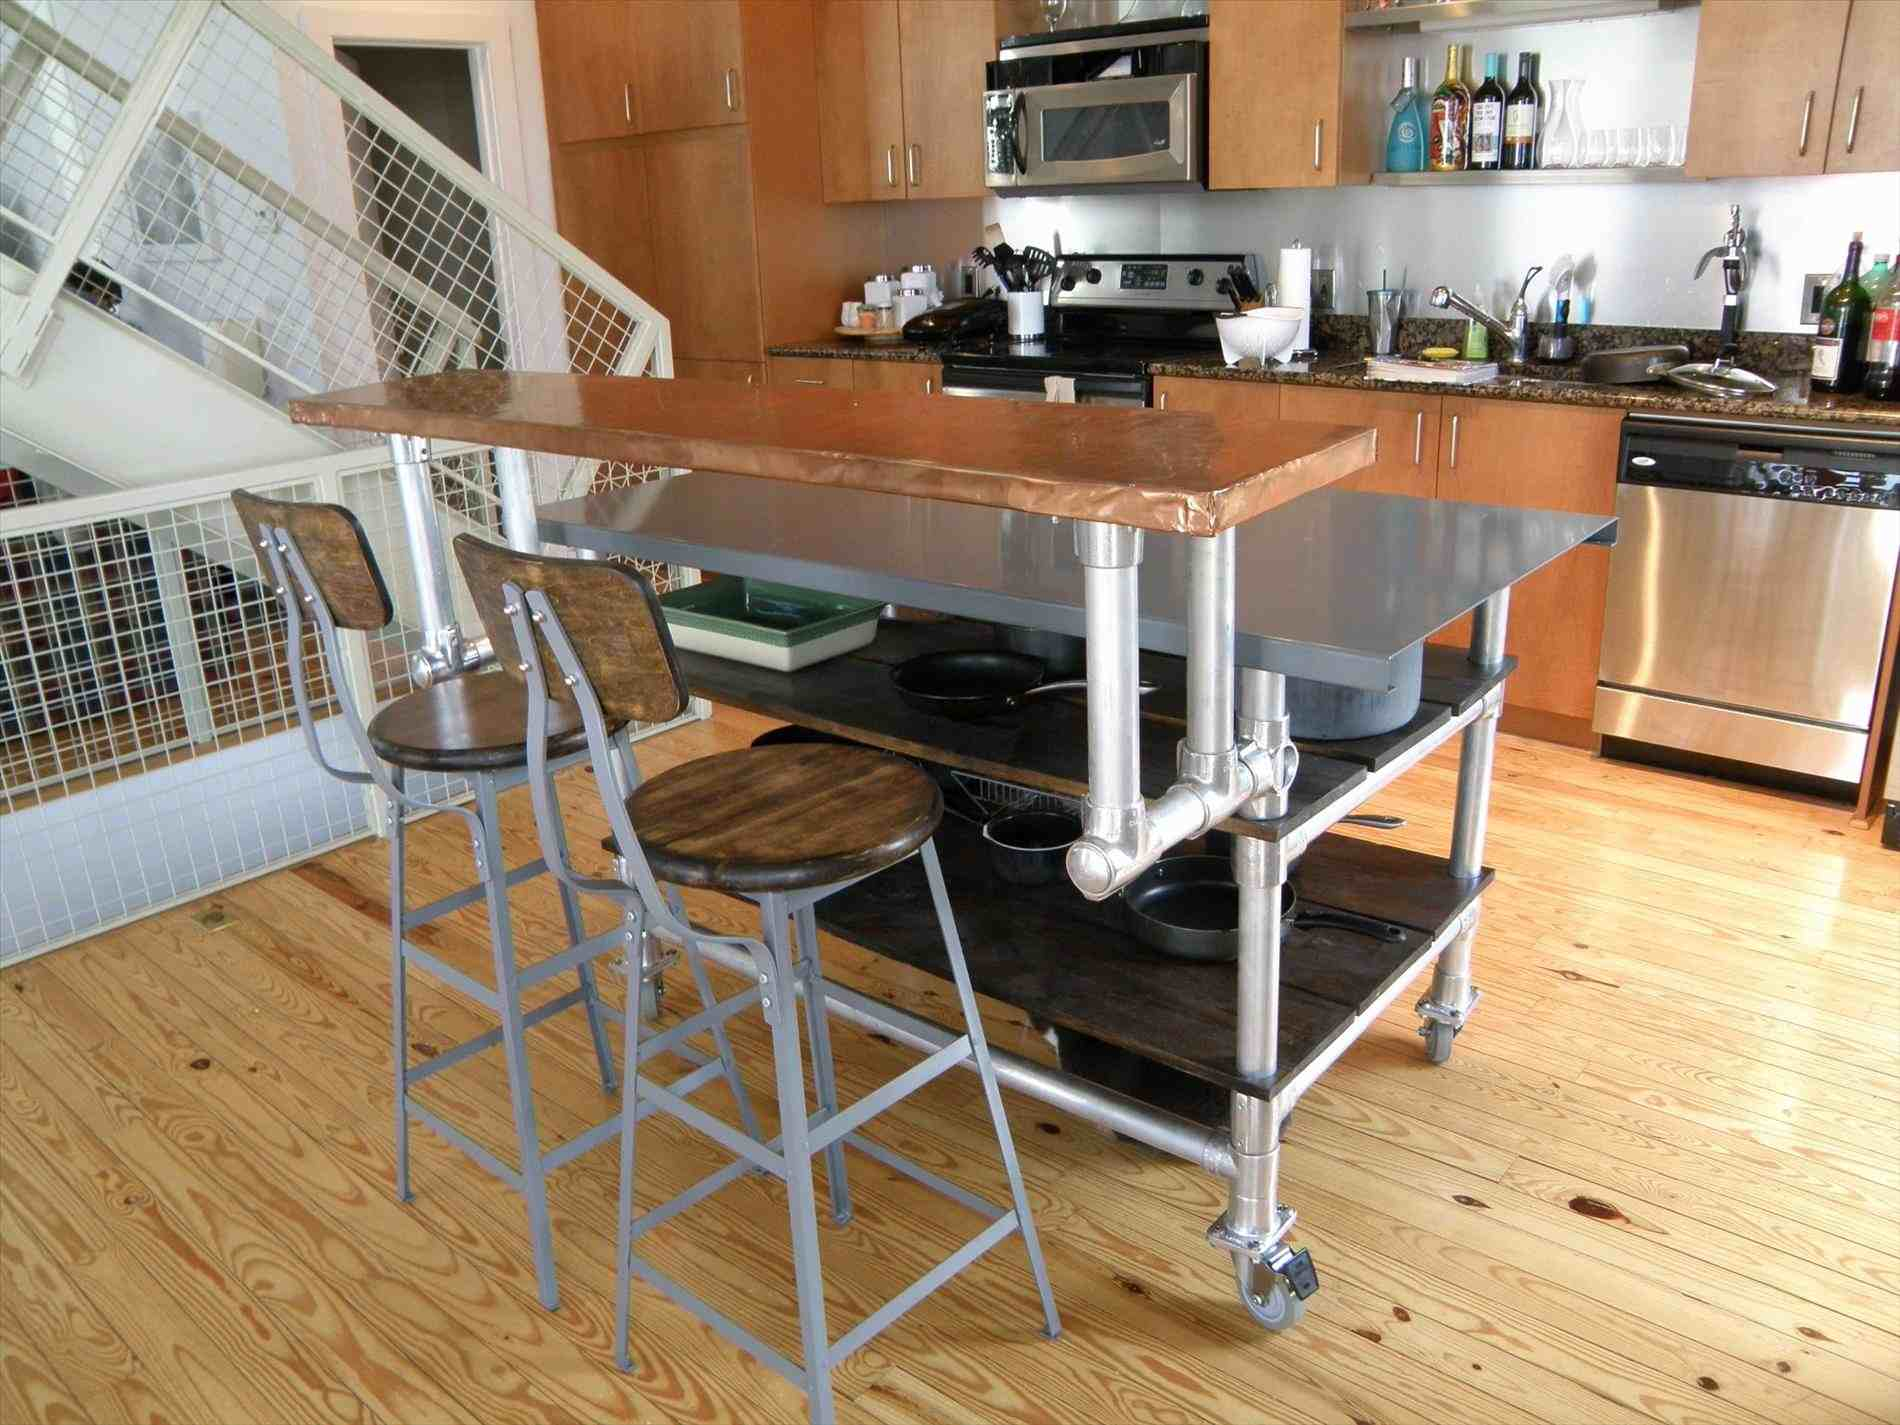 A rolling kitchen island is convenient, versatile, and excellent for a smaller kitchen. This type of island is not stationary, and can be moved from space to space at the user's discretion. When not in use, a rolling kitchen island can be tucked away in a corner and out of the way of the rest of the kitchen. The rolling kitchen island is great for someone that needs just a little more room to work with at an affordable price.